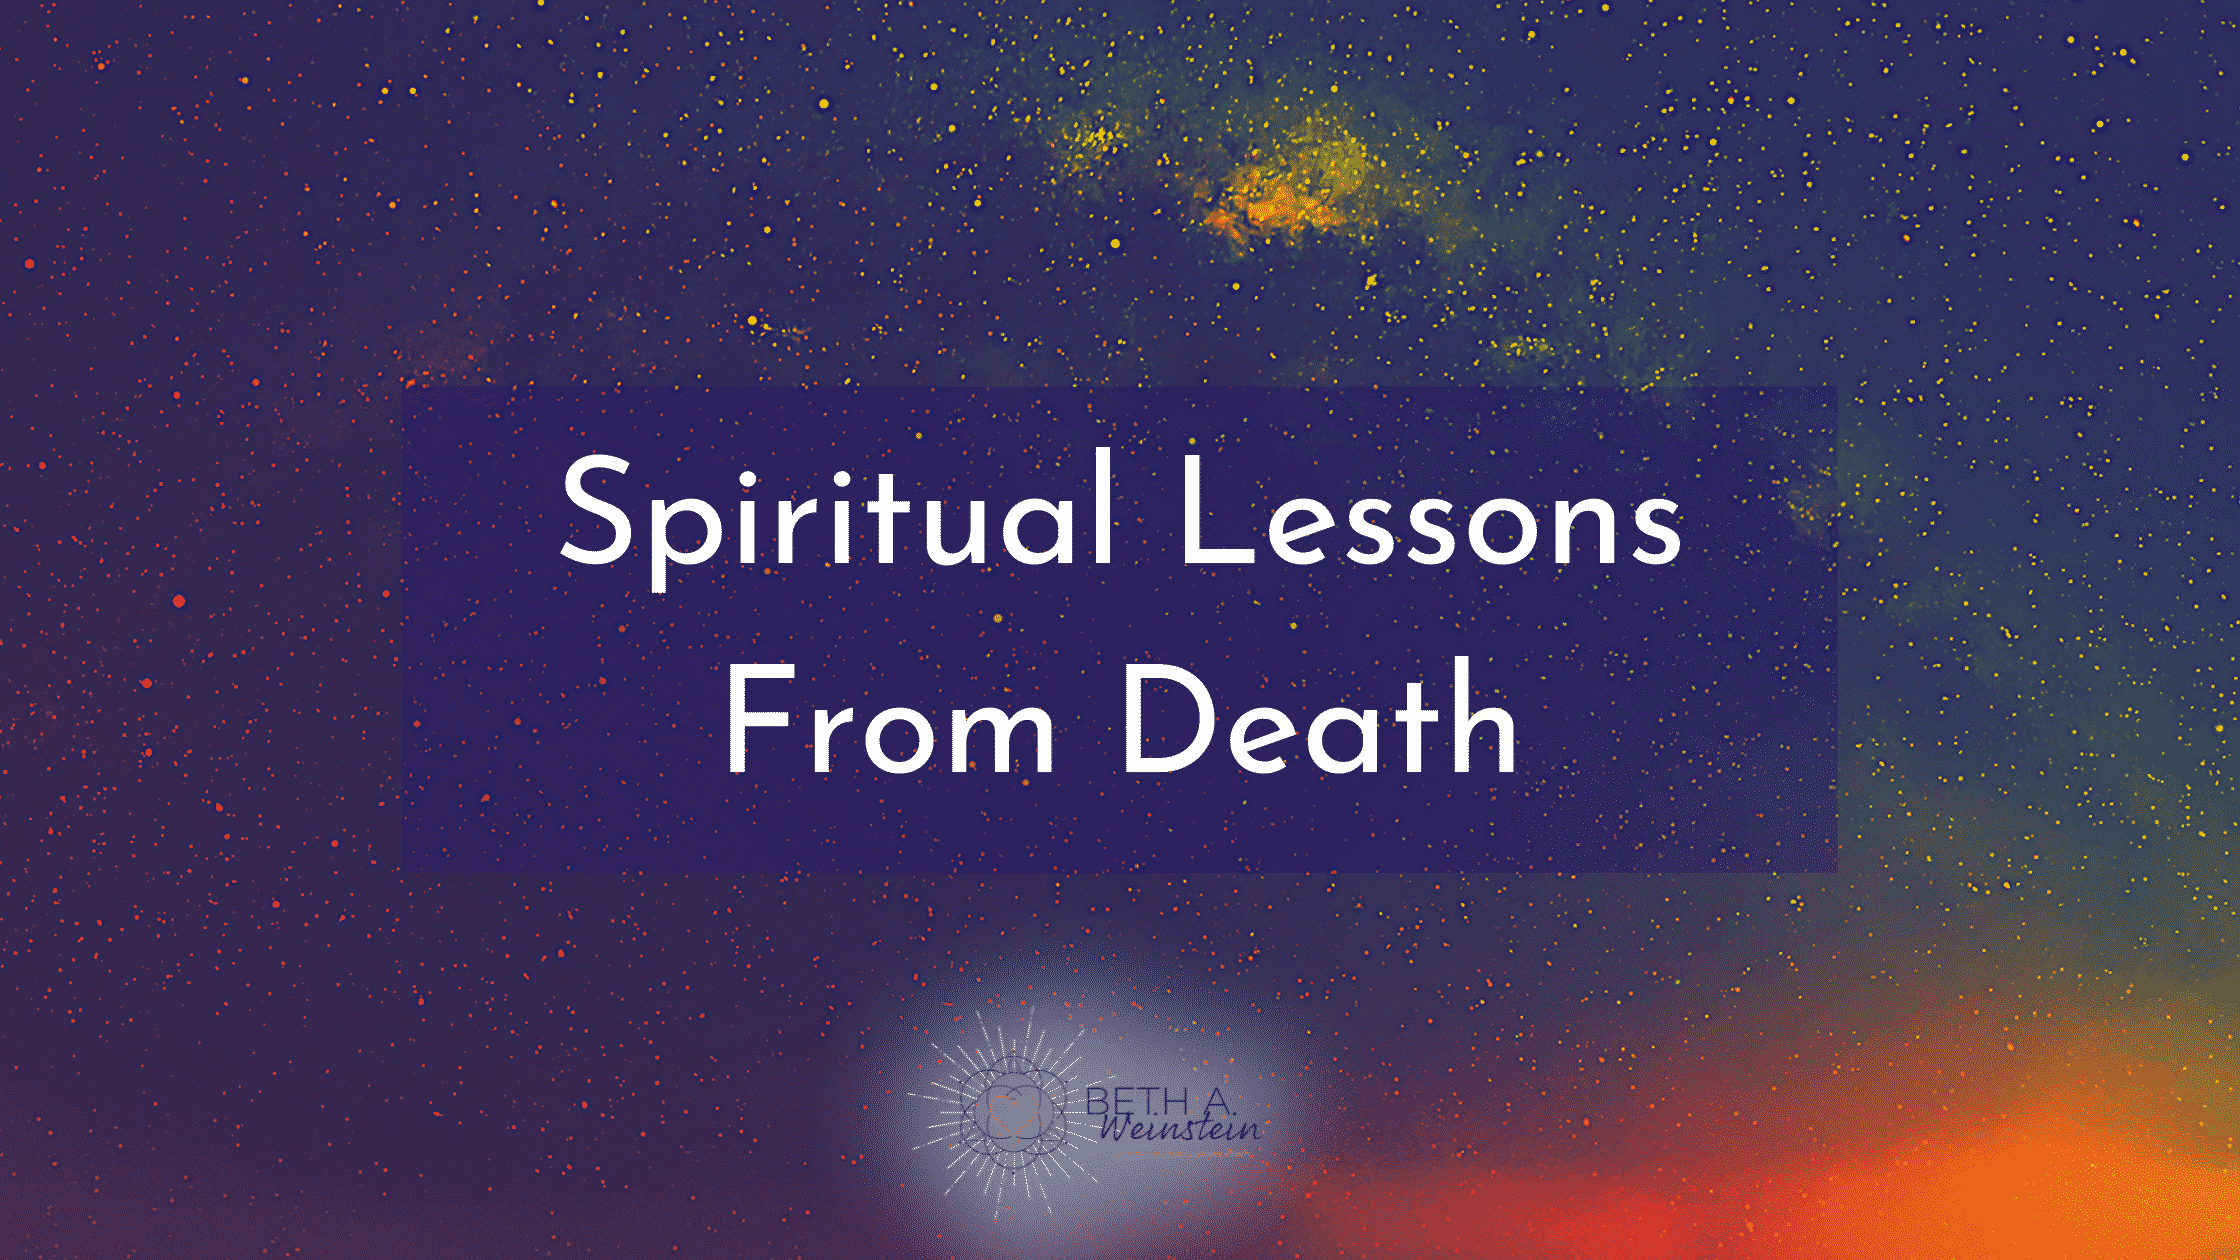 Spiritual Lessons From Death